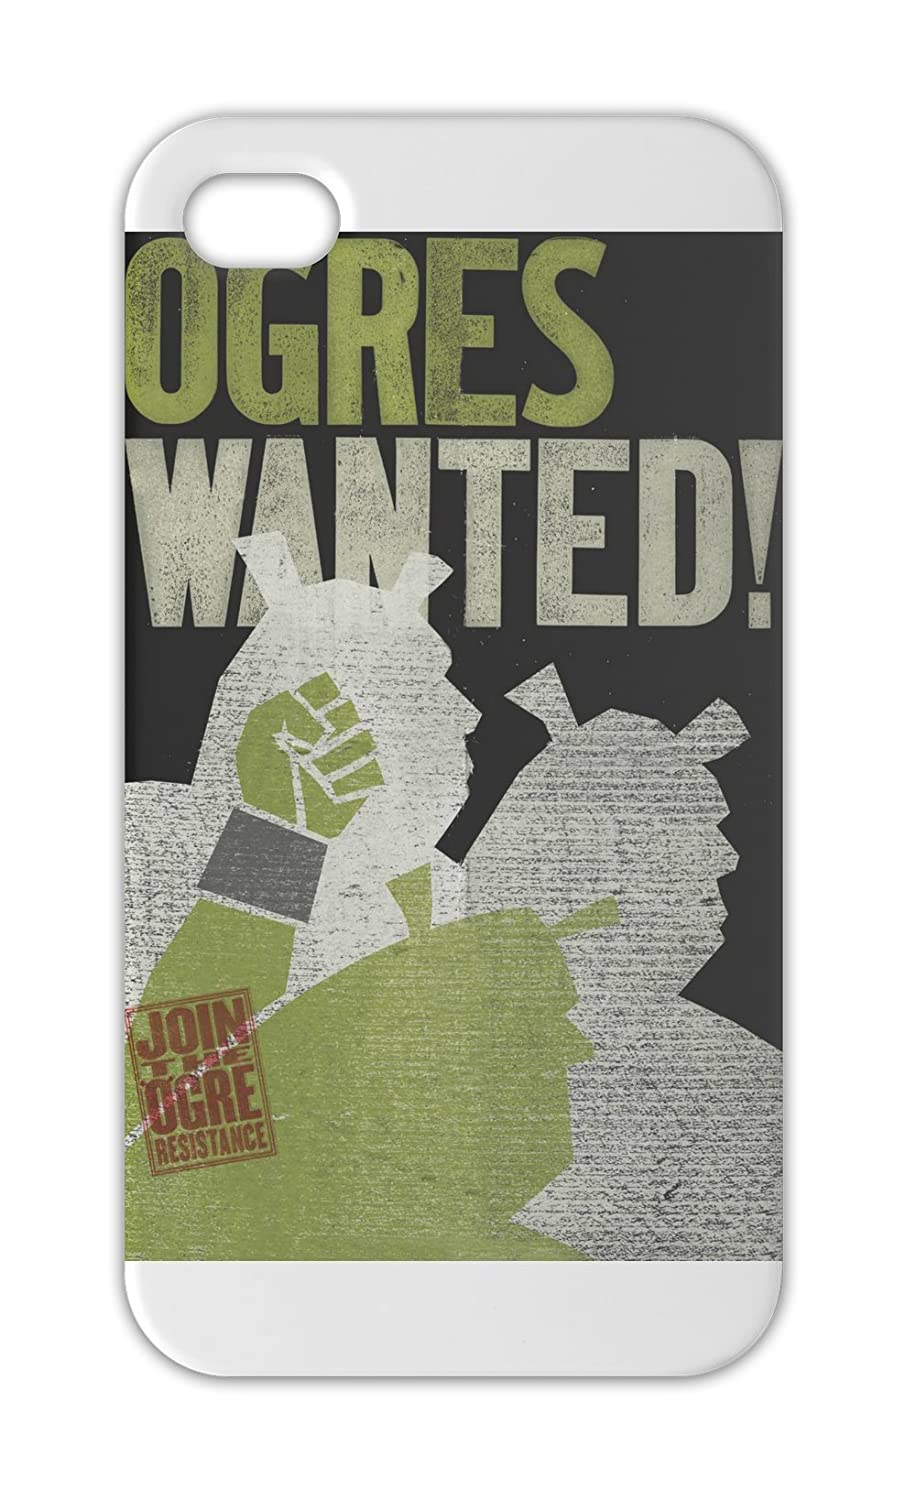 Shrek Ogres Ewanred Join The Ogre Resistance Iphone 5-5s ...